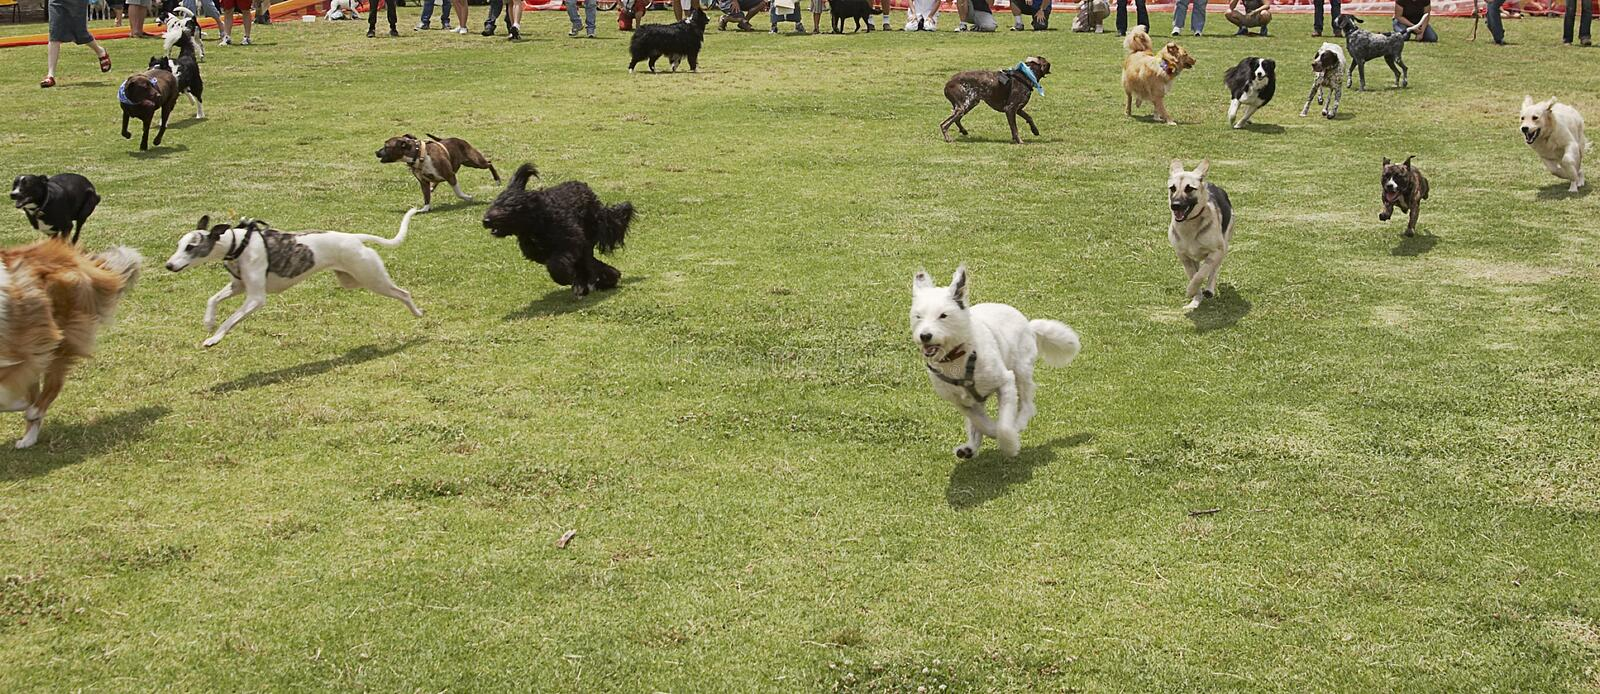 The Dogs Are Loose royalty free stock photos